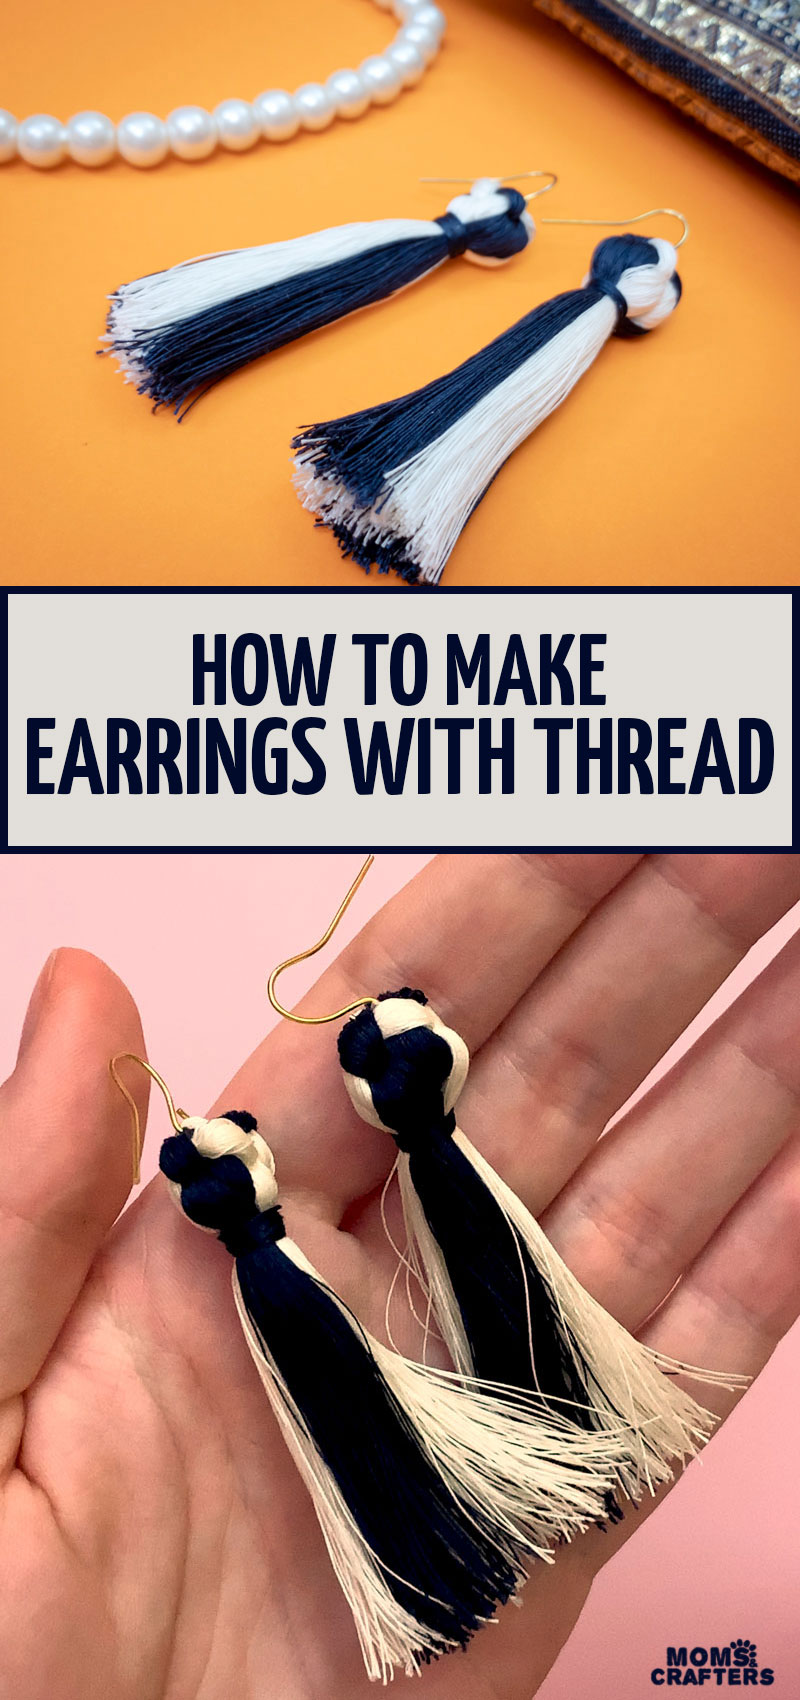 Learn how to make chic tassel earrings with thread, a cool DIY earrings tutorial for beginners